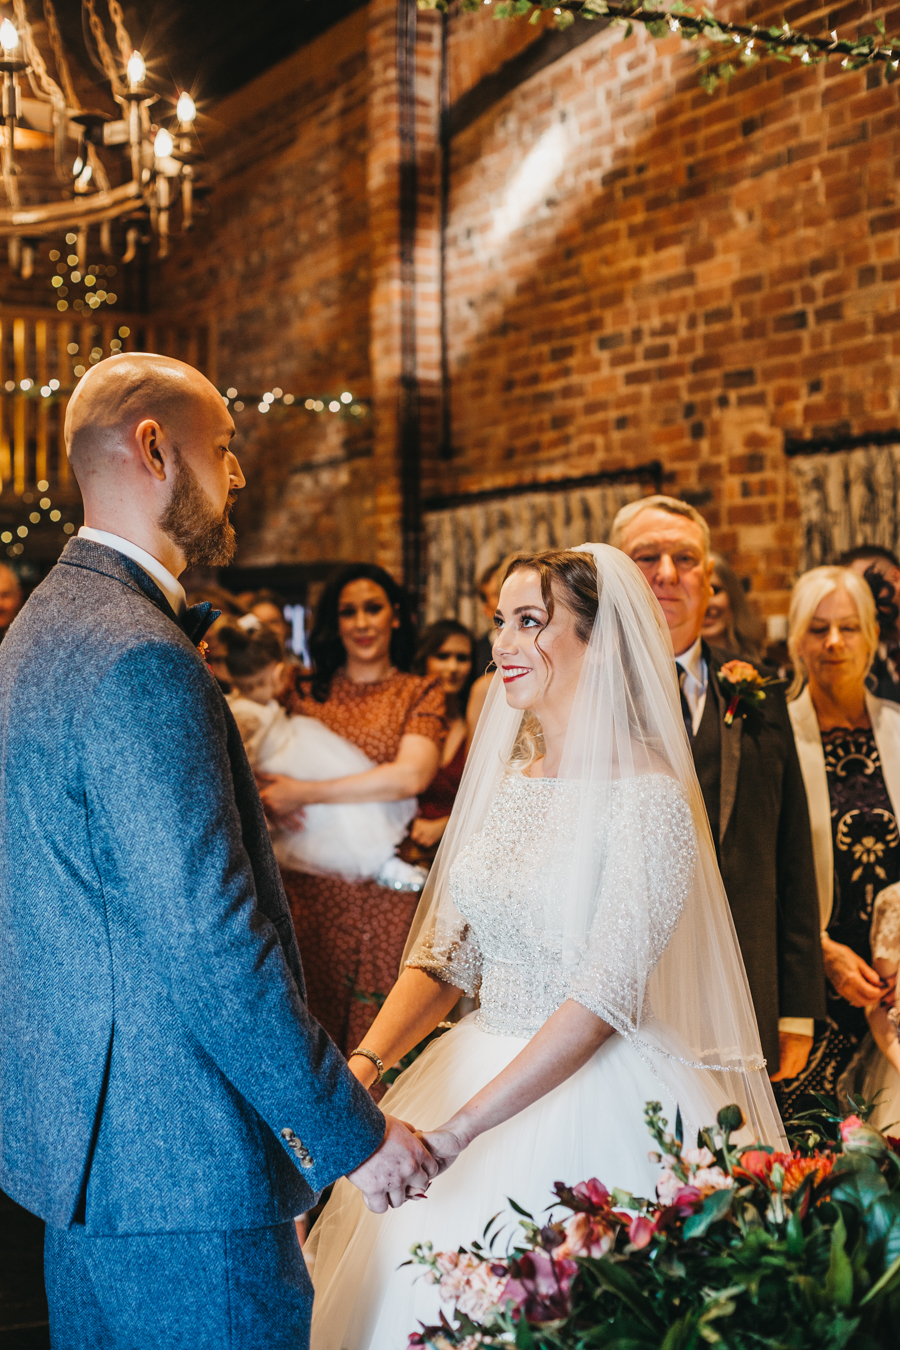 Sophie & Chris's beautiful English wedding at Curradine Barns, with Nellie Photography (24)